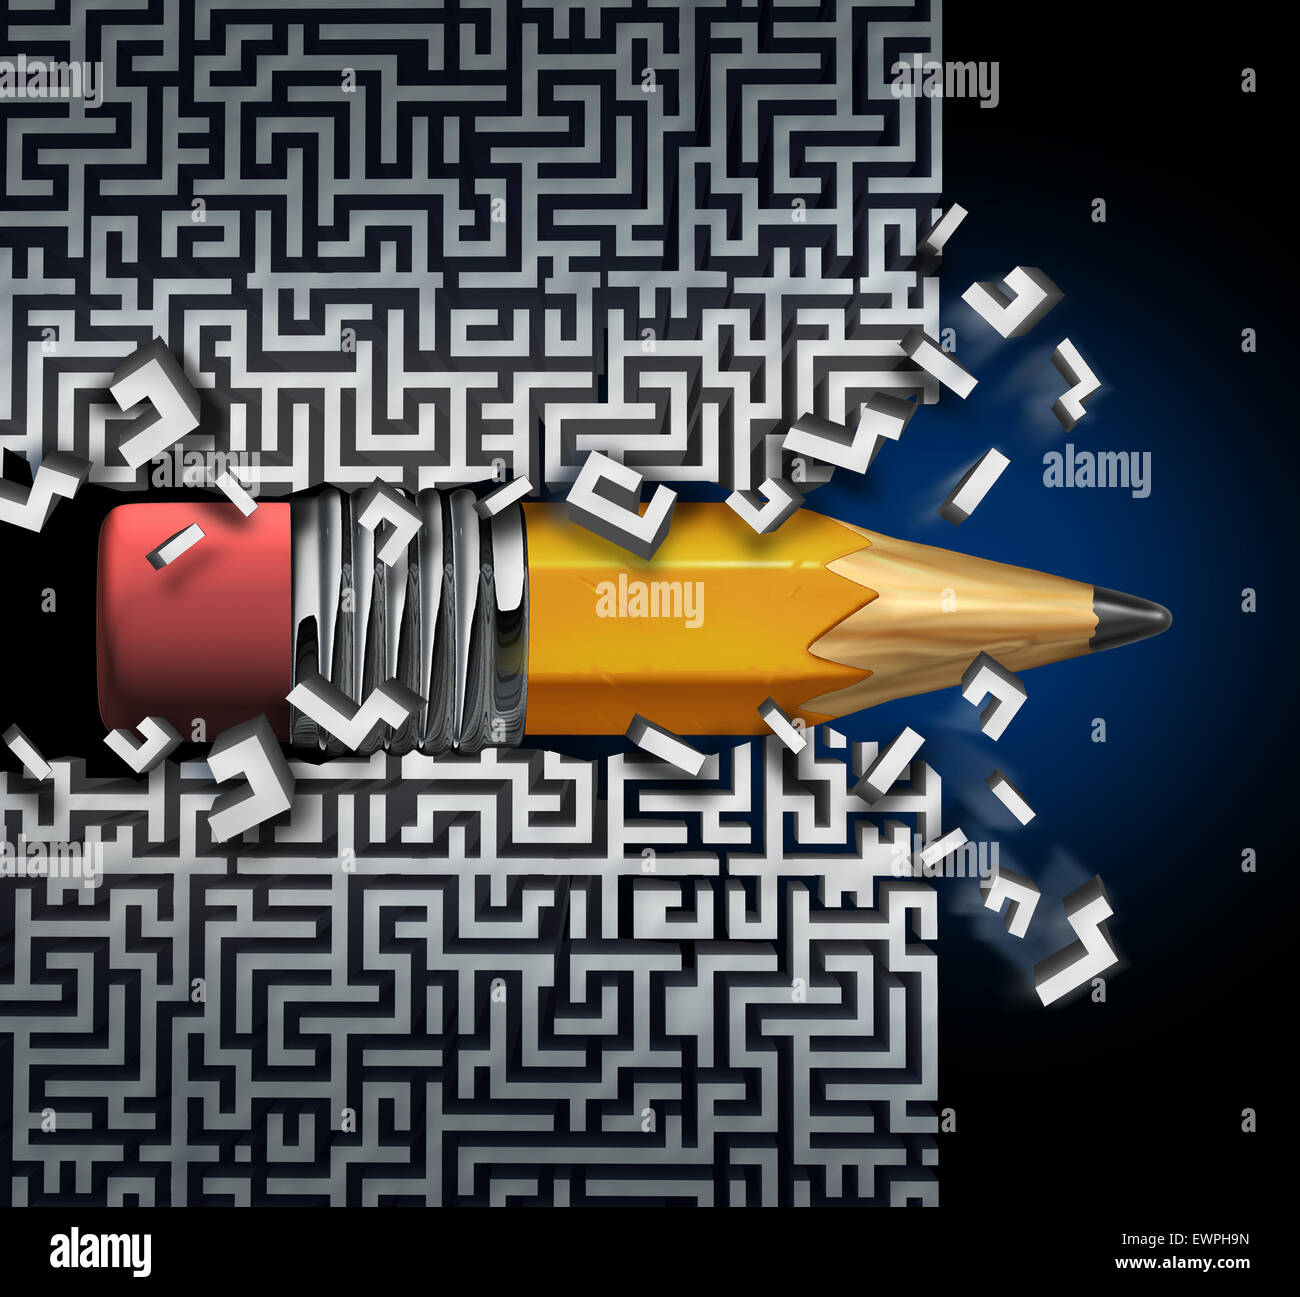 Innovative solution plan as a pencil  trying to find way out of maze breaking through the labyrinth as a business - Stock Image